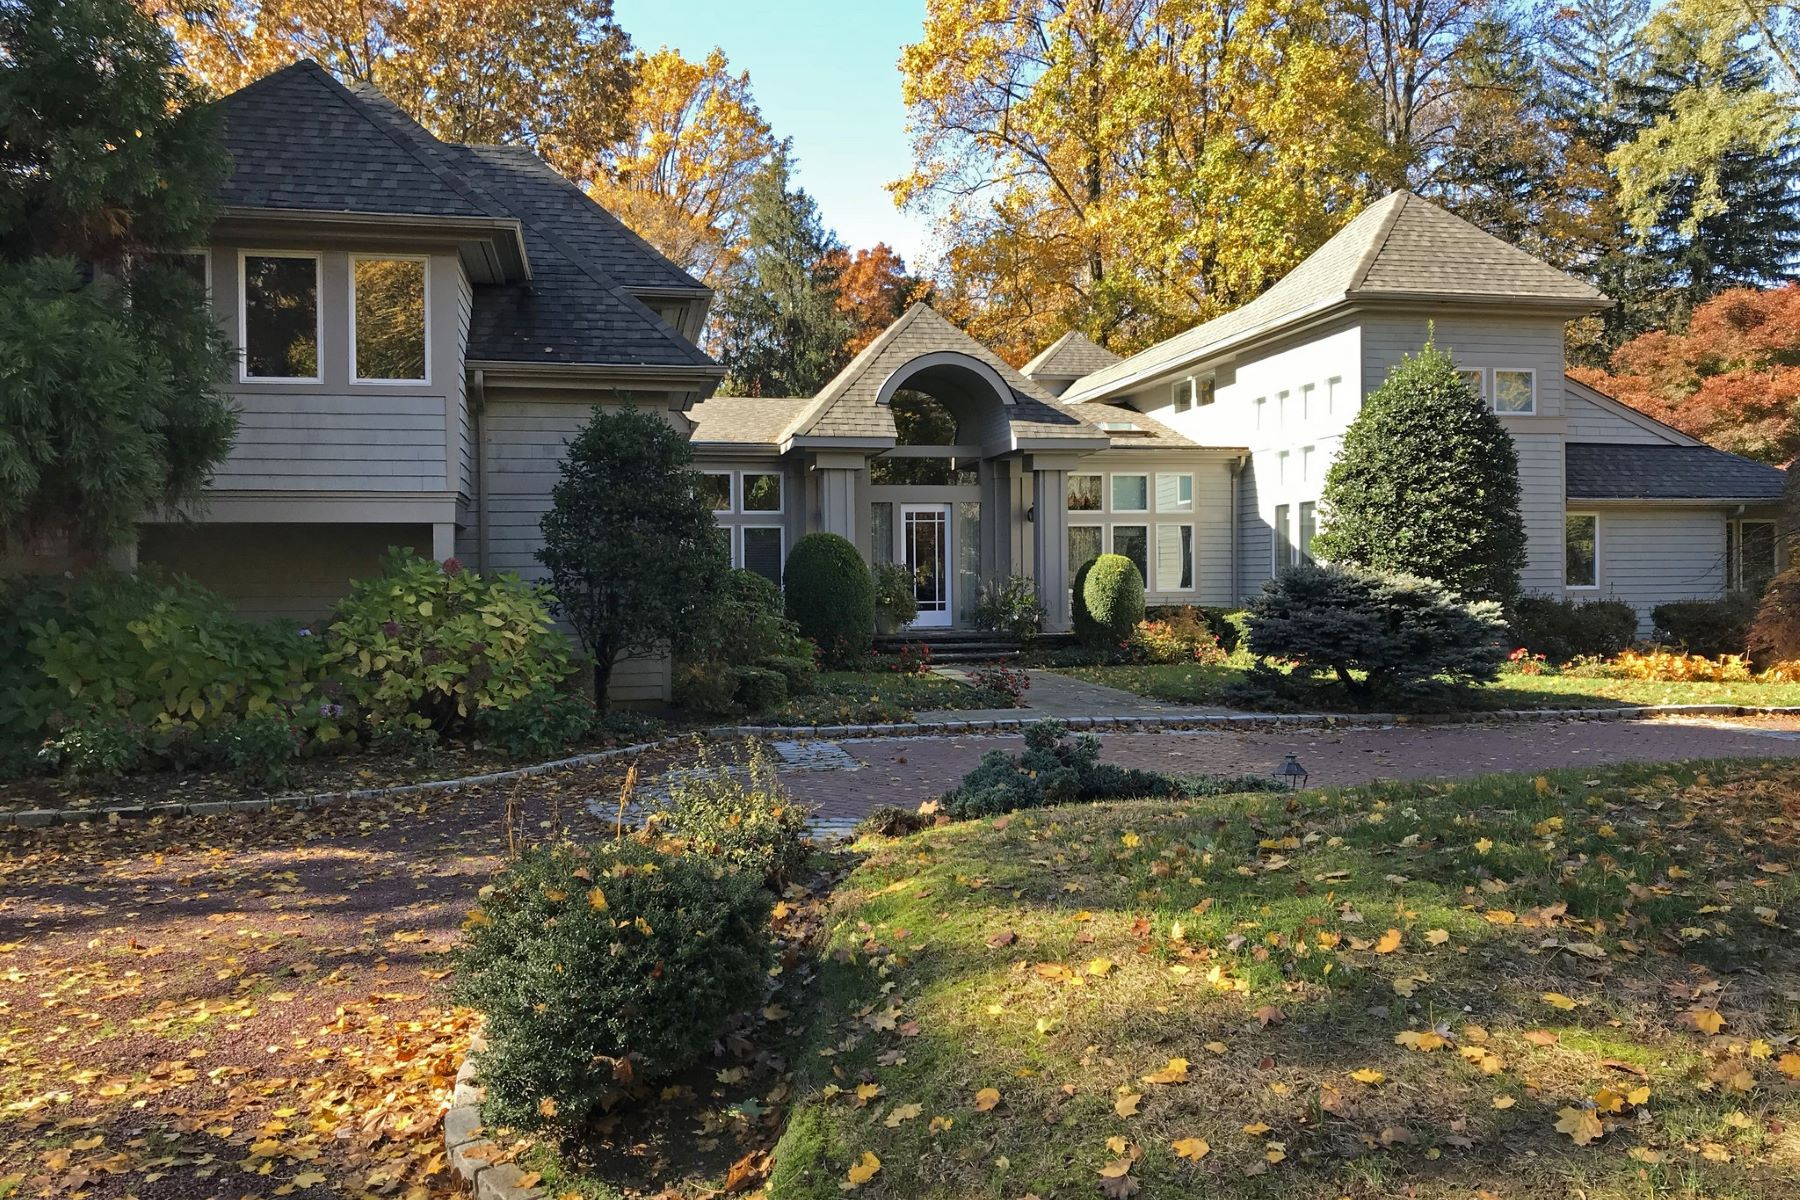 Single Family Homes for Active at Upper Brookville 24 Winding Ln Upper Brookville, New York 11545 United States